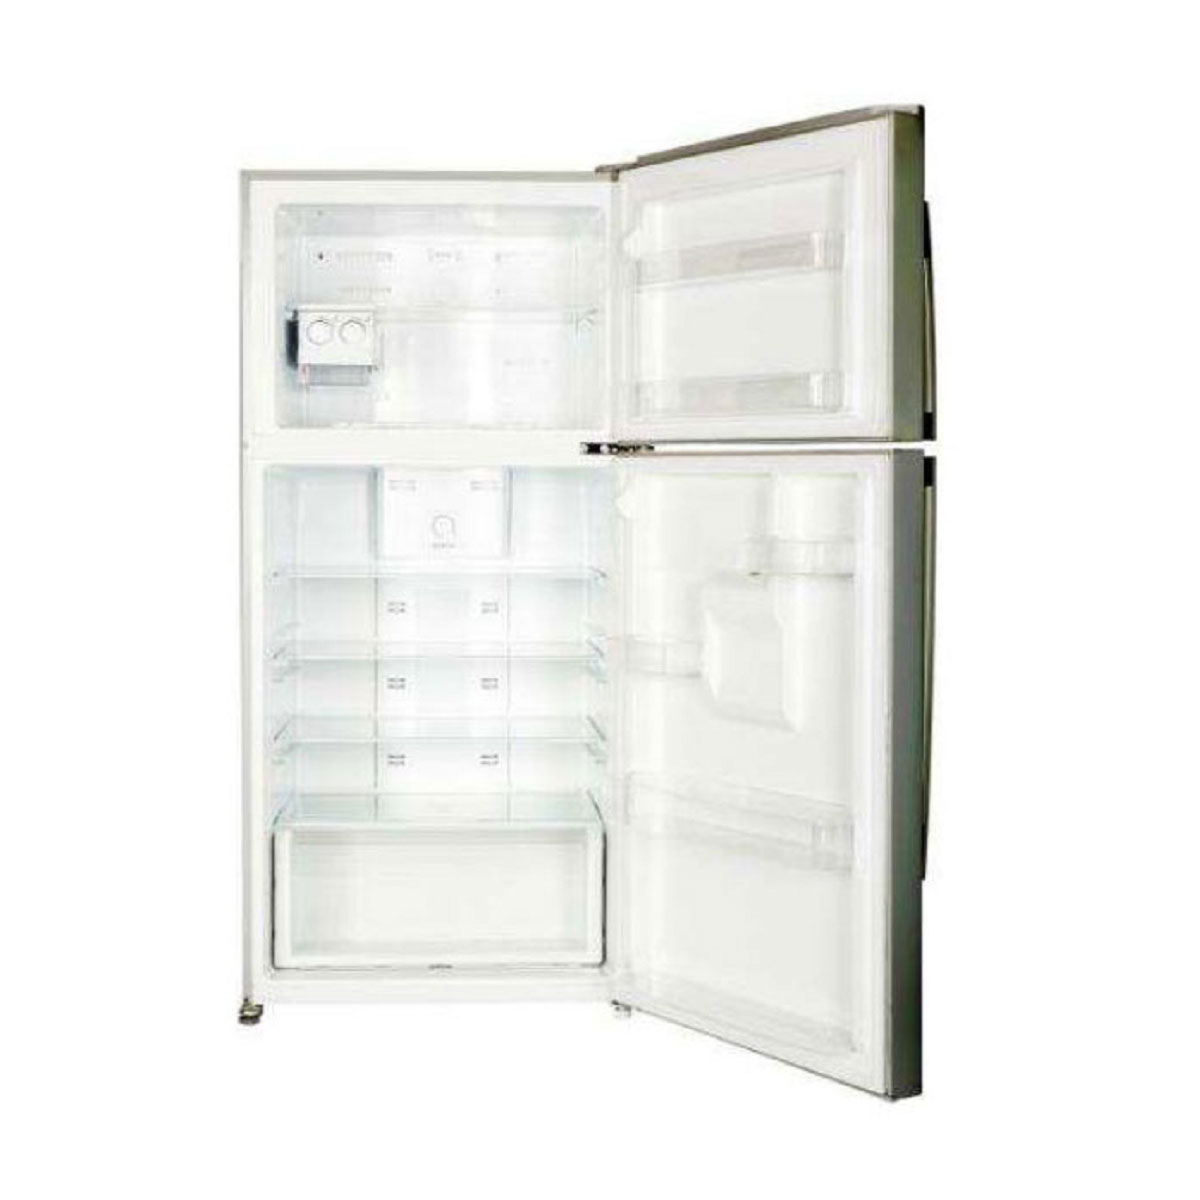 Changhong FTM520R02SD 520L Stainless Steel Fridge with Water Dispenser 27538